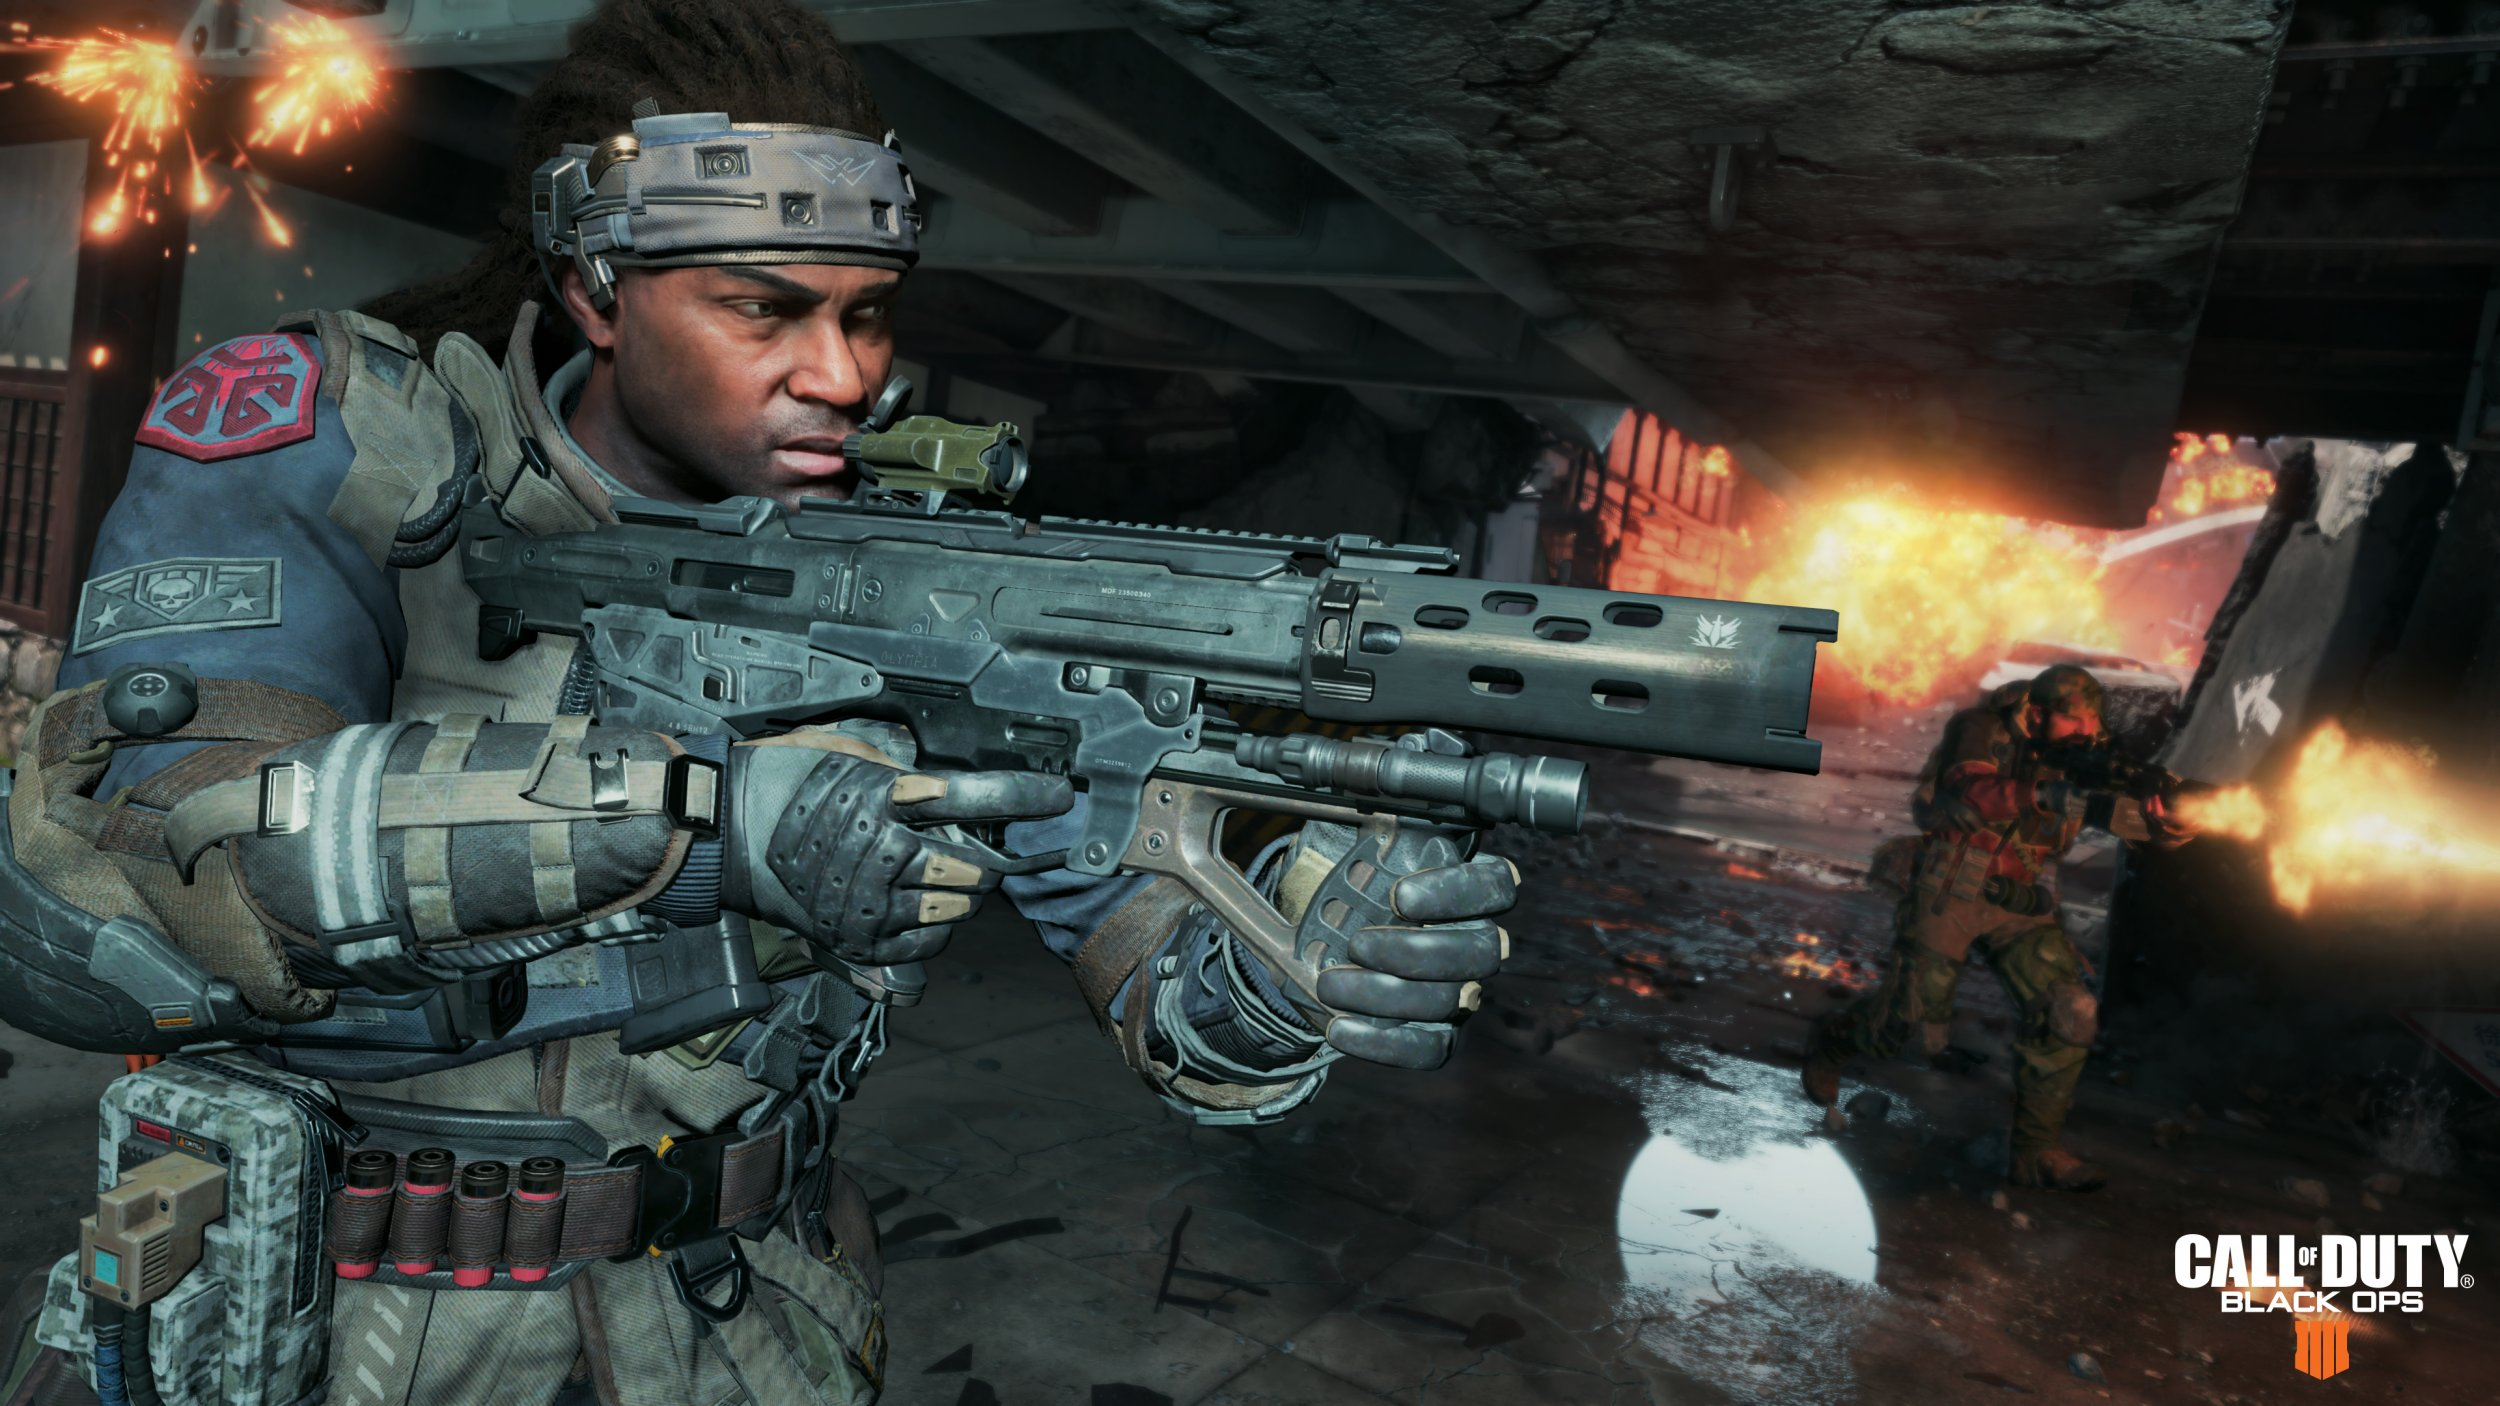 Call of Duty: Black Ops 4' Twitch Prime Loot - How to Get Free